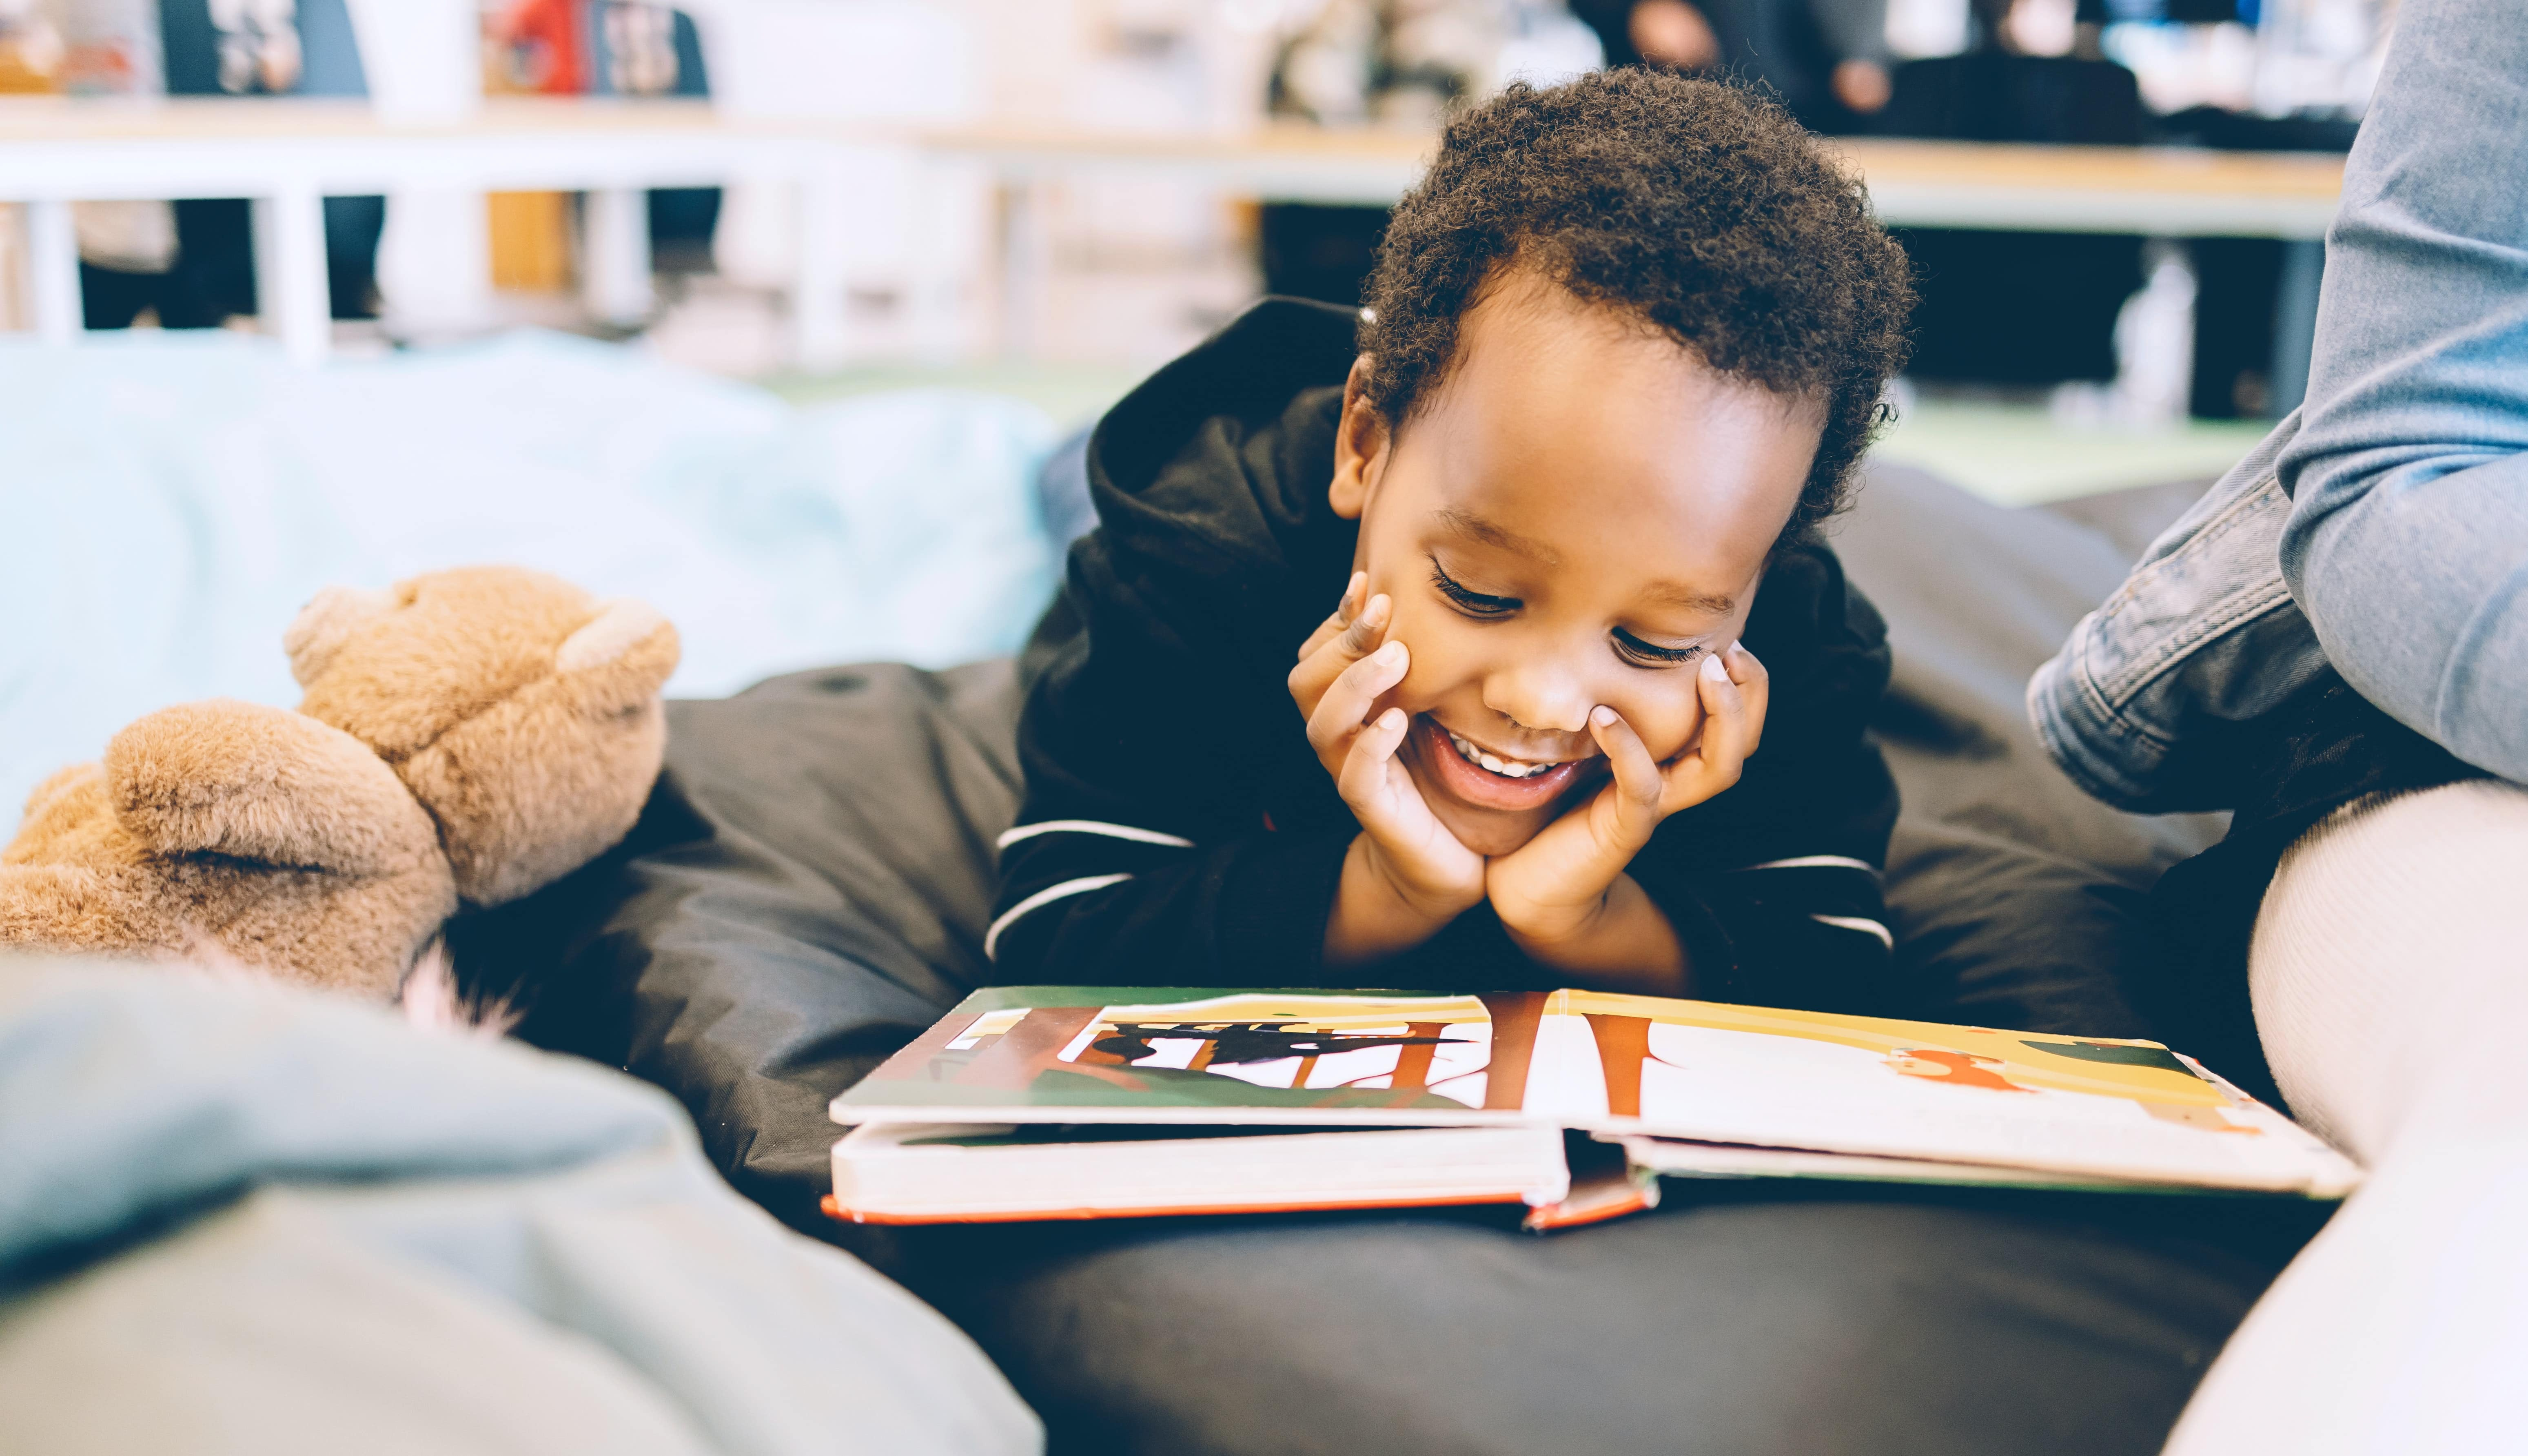 Helping Children Love Books and Reading